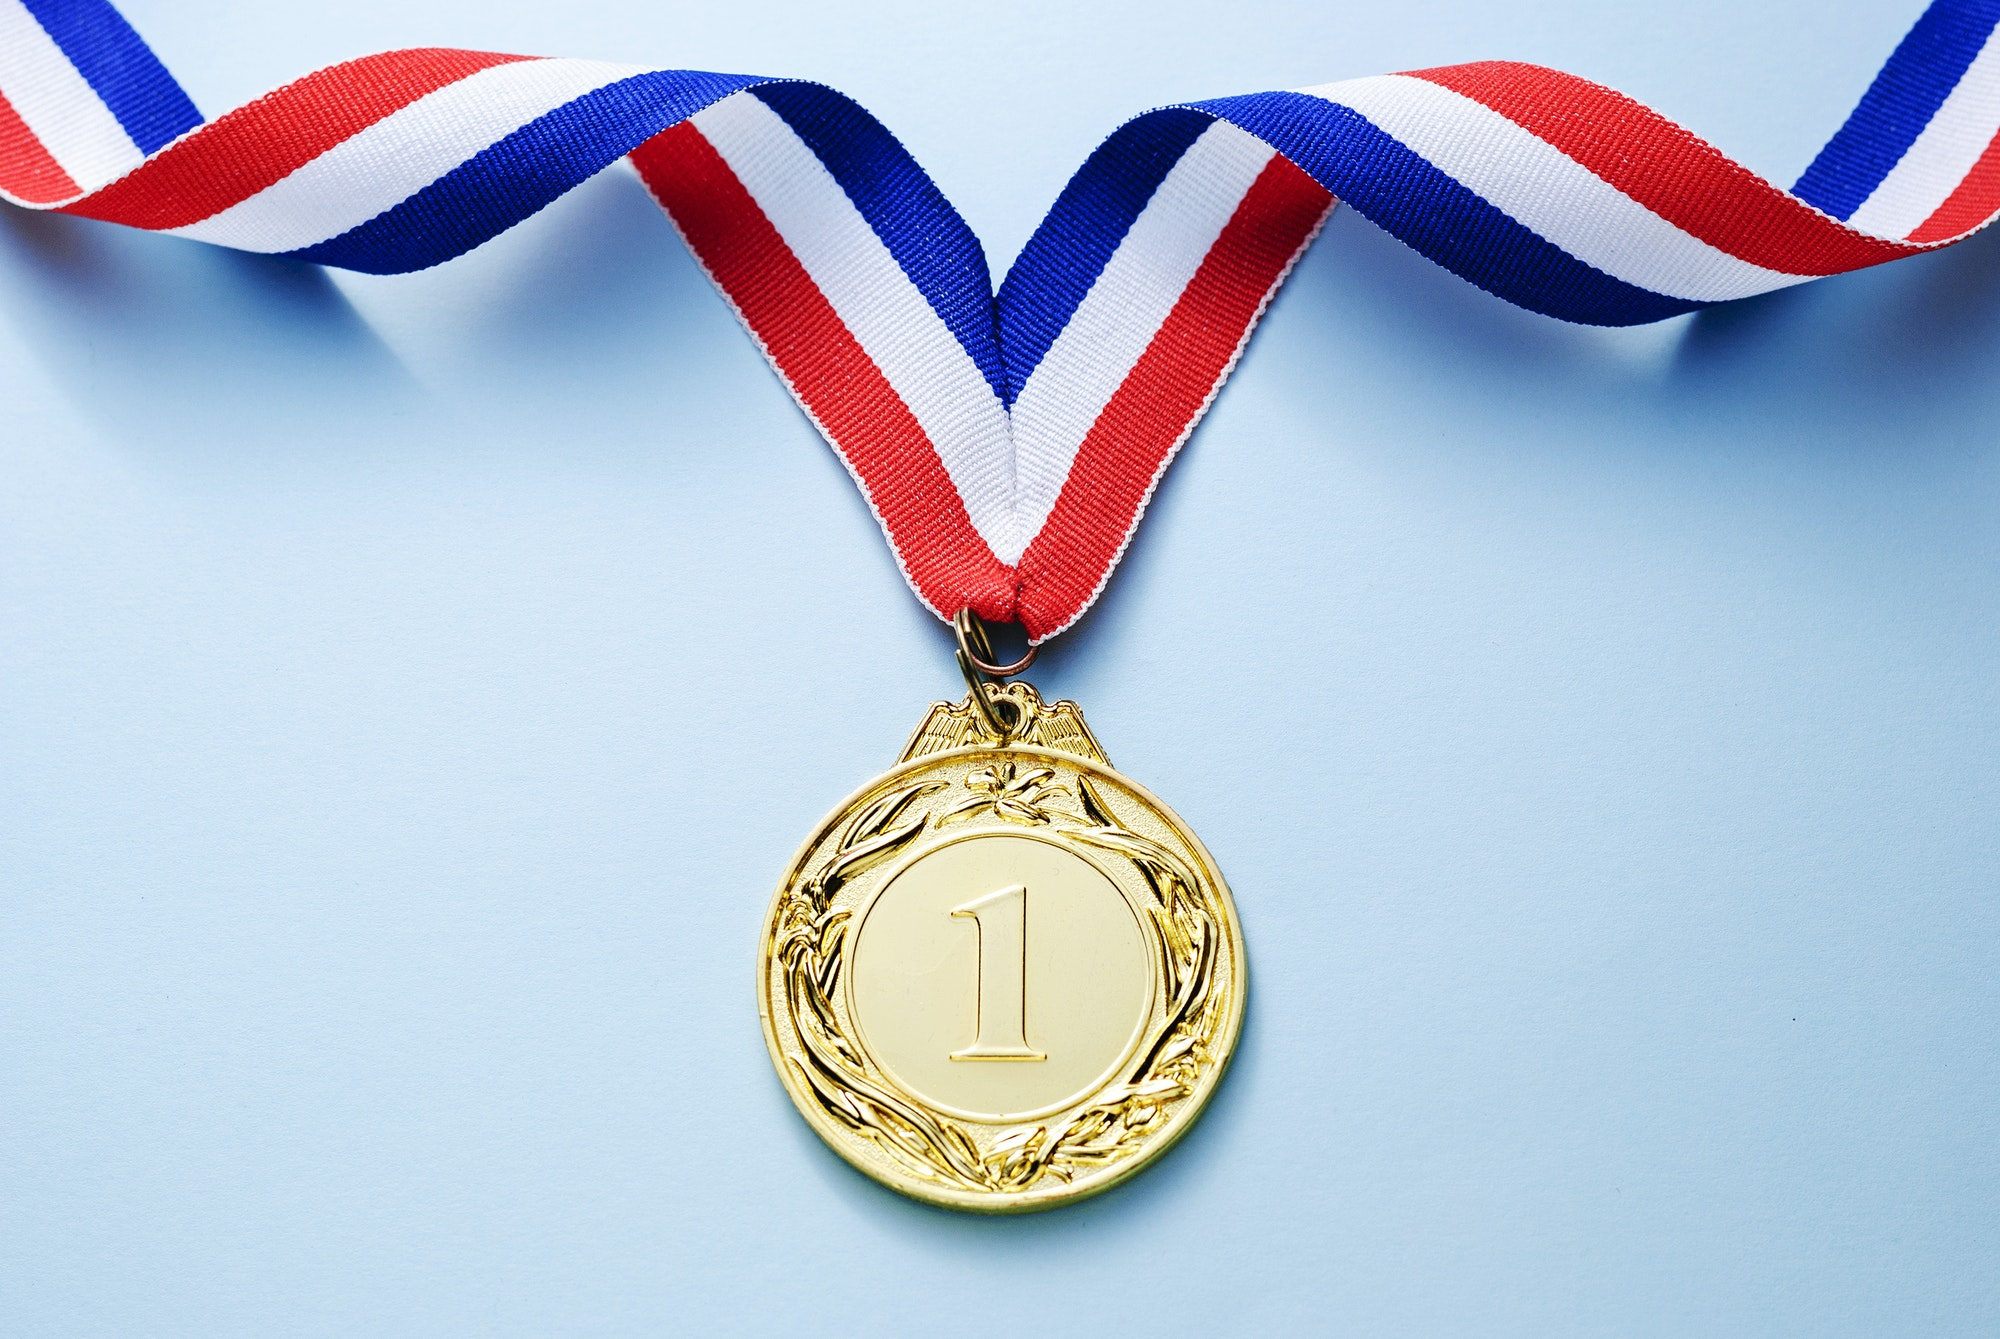 Gold medal 1 place with a ribbon